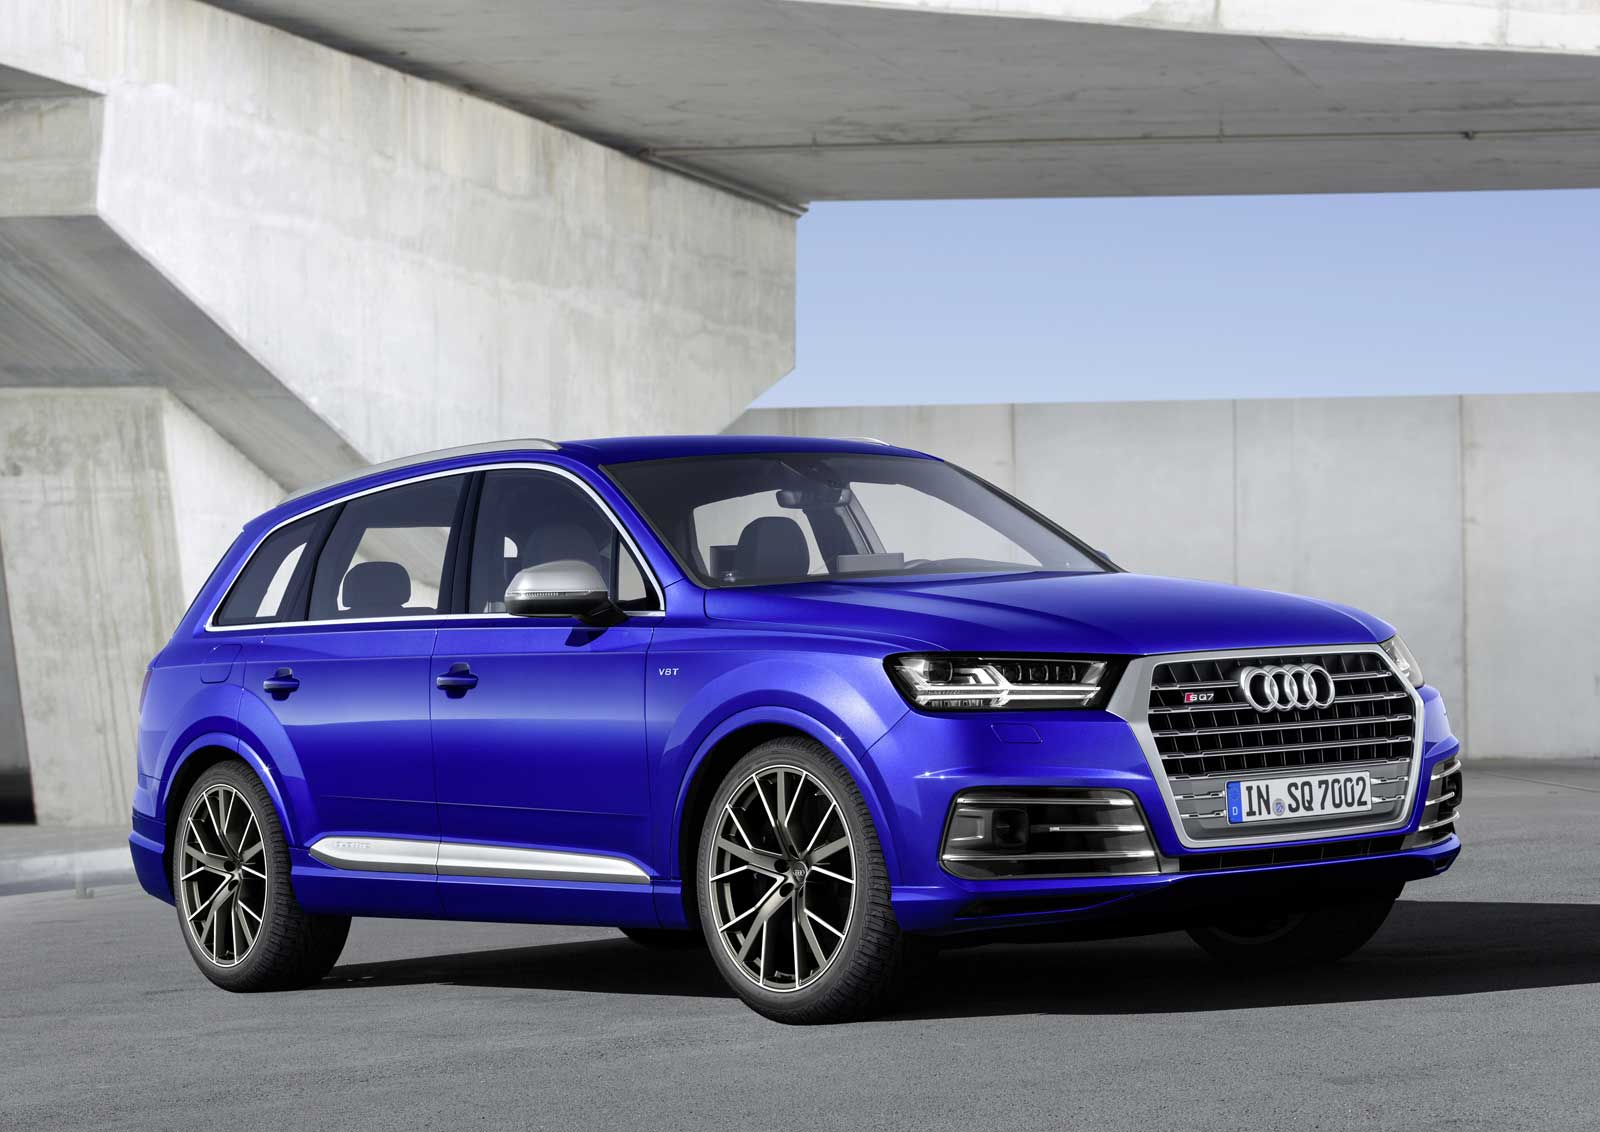 Audi Sq7 Usa Release >> Audi Sq7 Tdi Features Three Blowers 48 Volt Electrical System